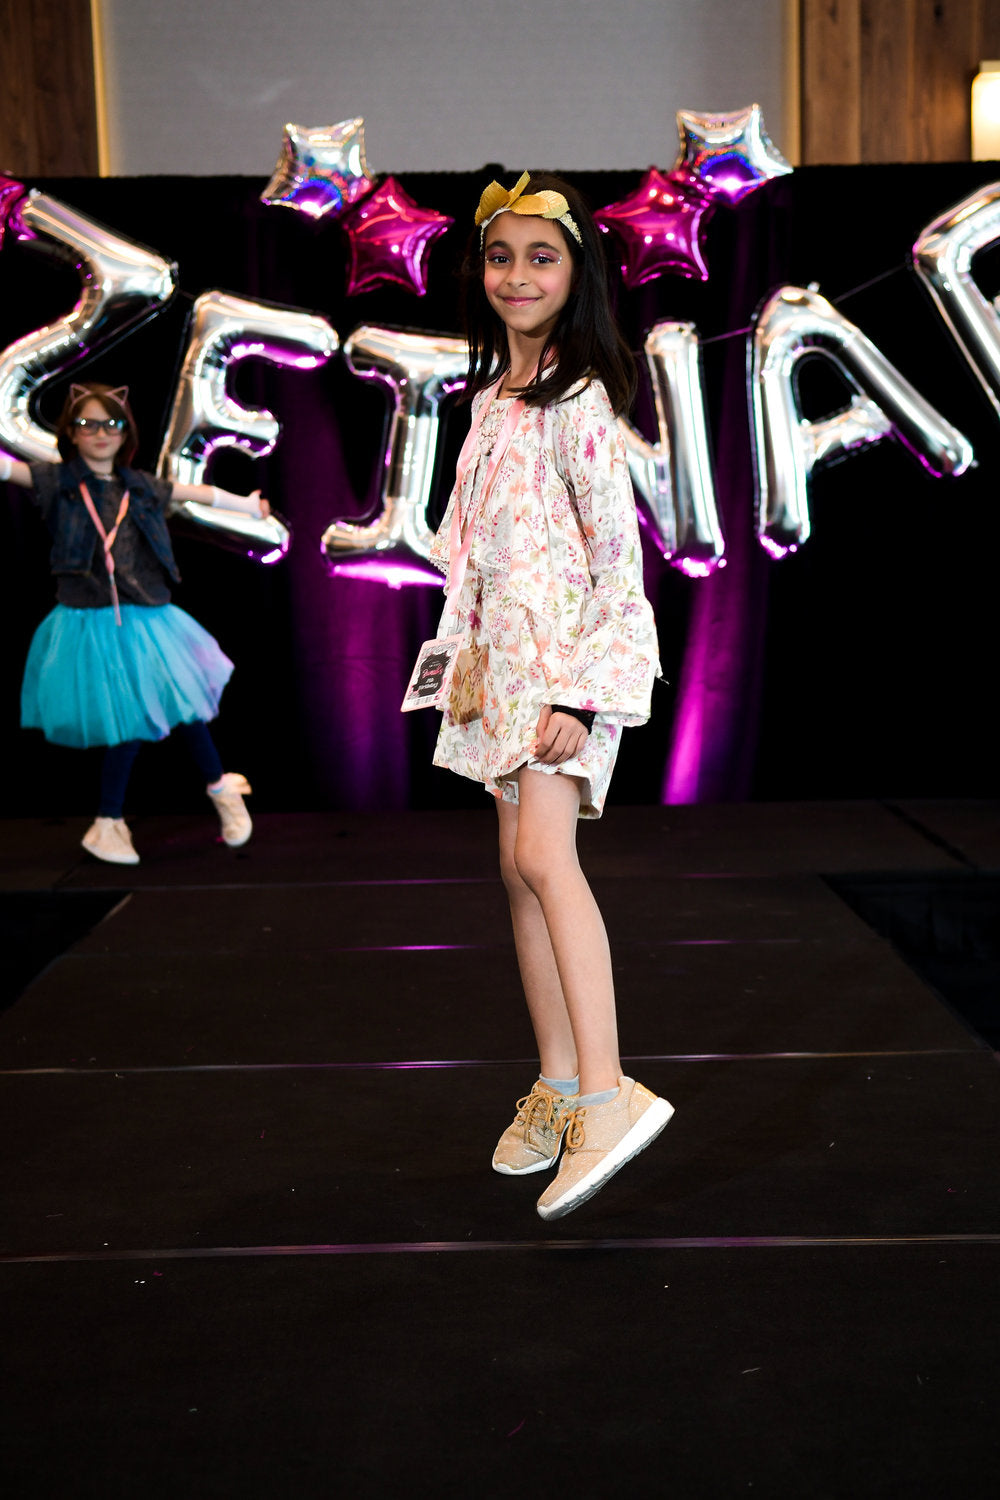 Birthday party attendee posing on runway for birthday fashion show